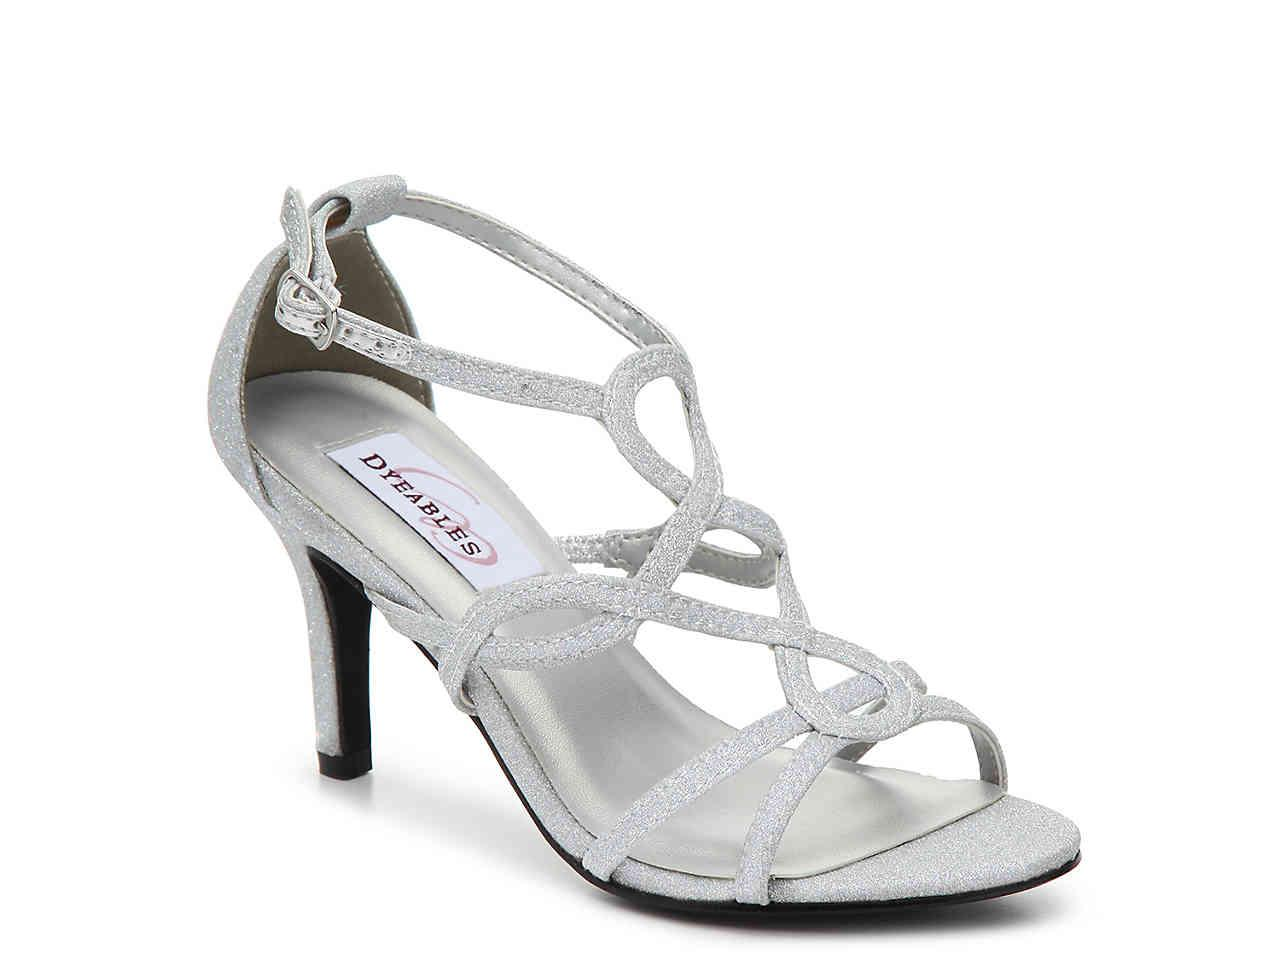 c50047f8e0 Lyst - Dyeables Madison Sandal in Metallic